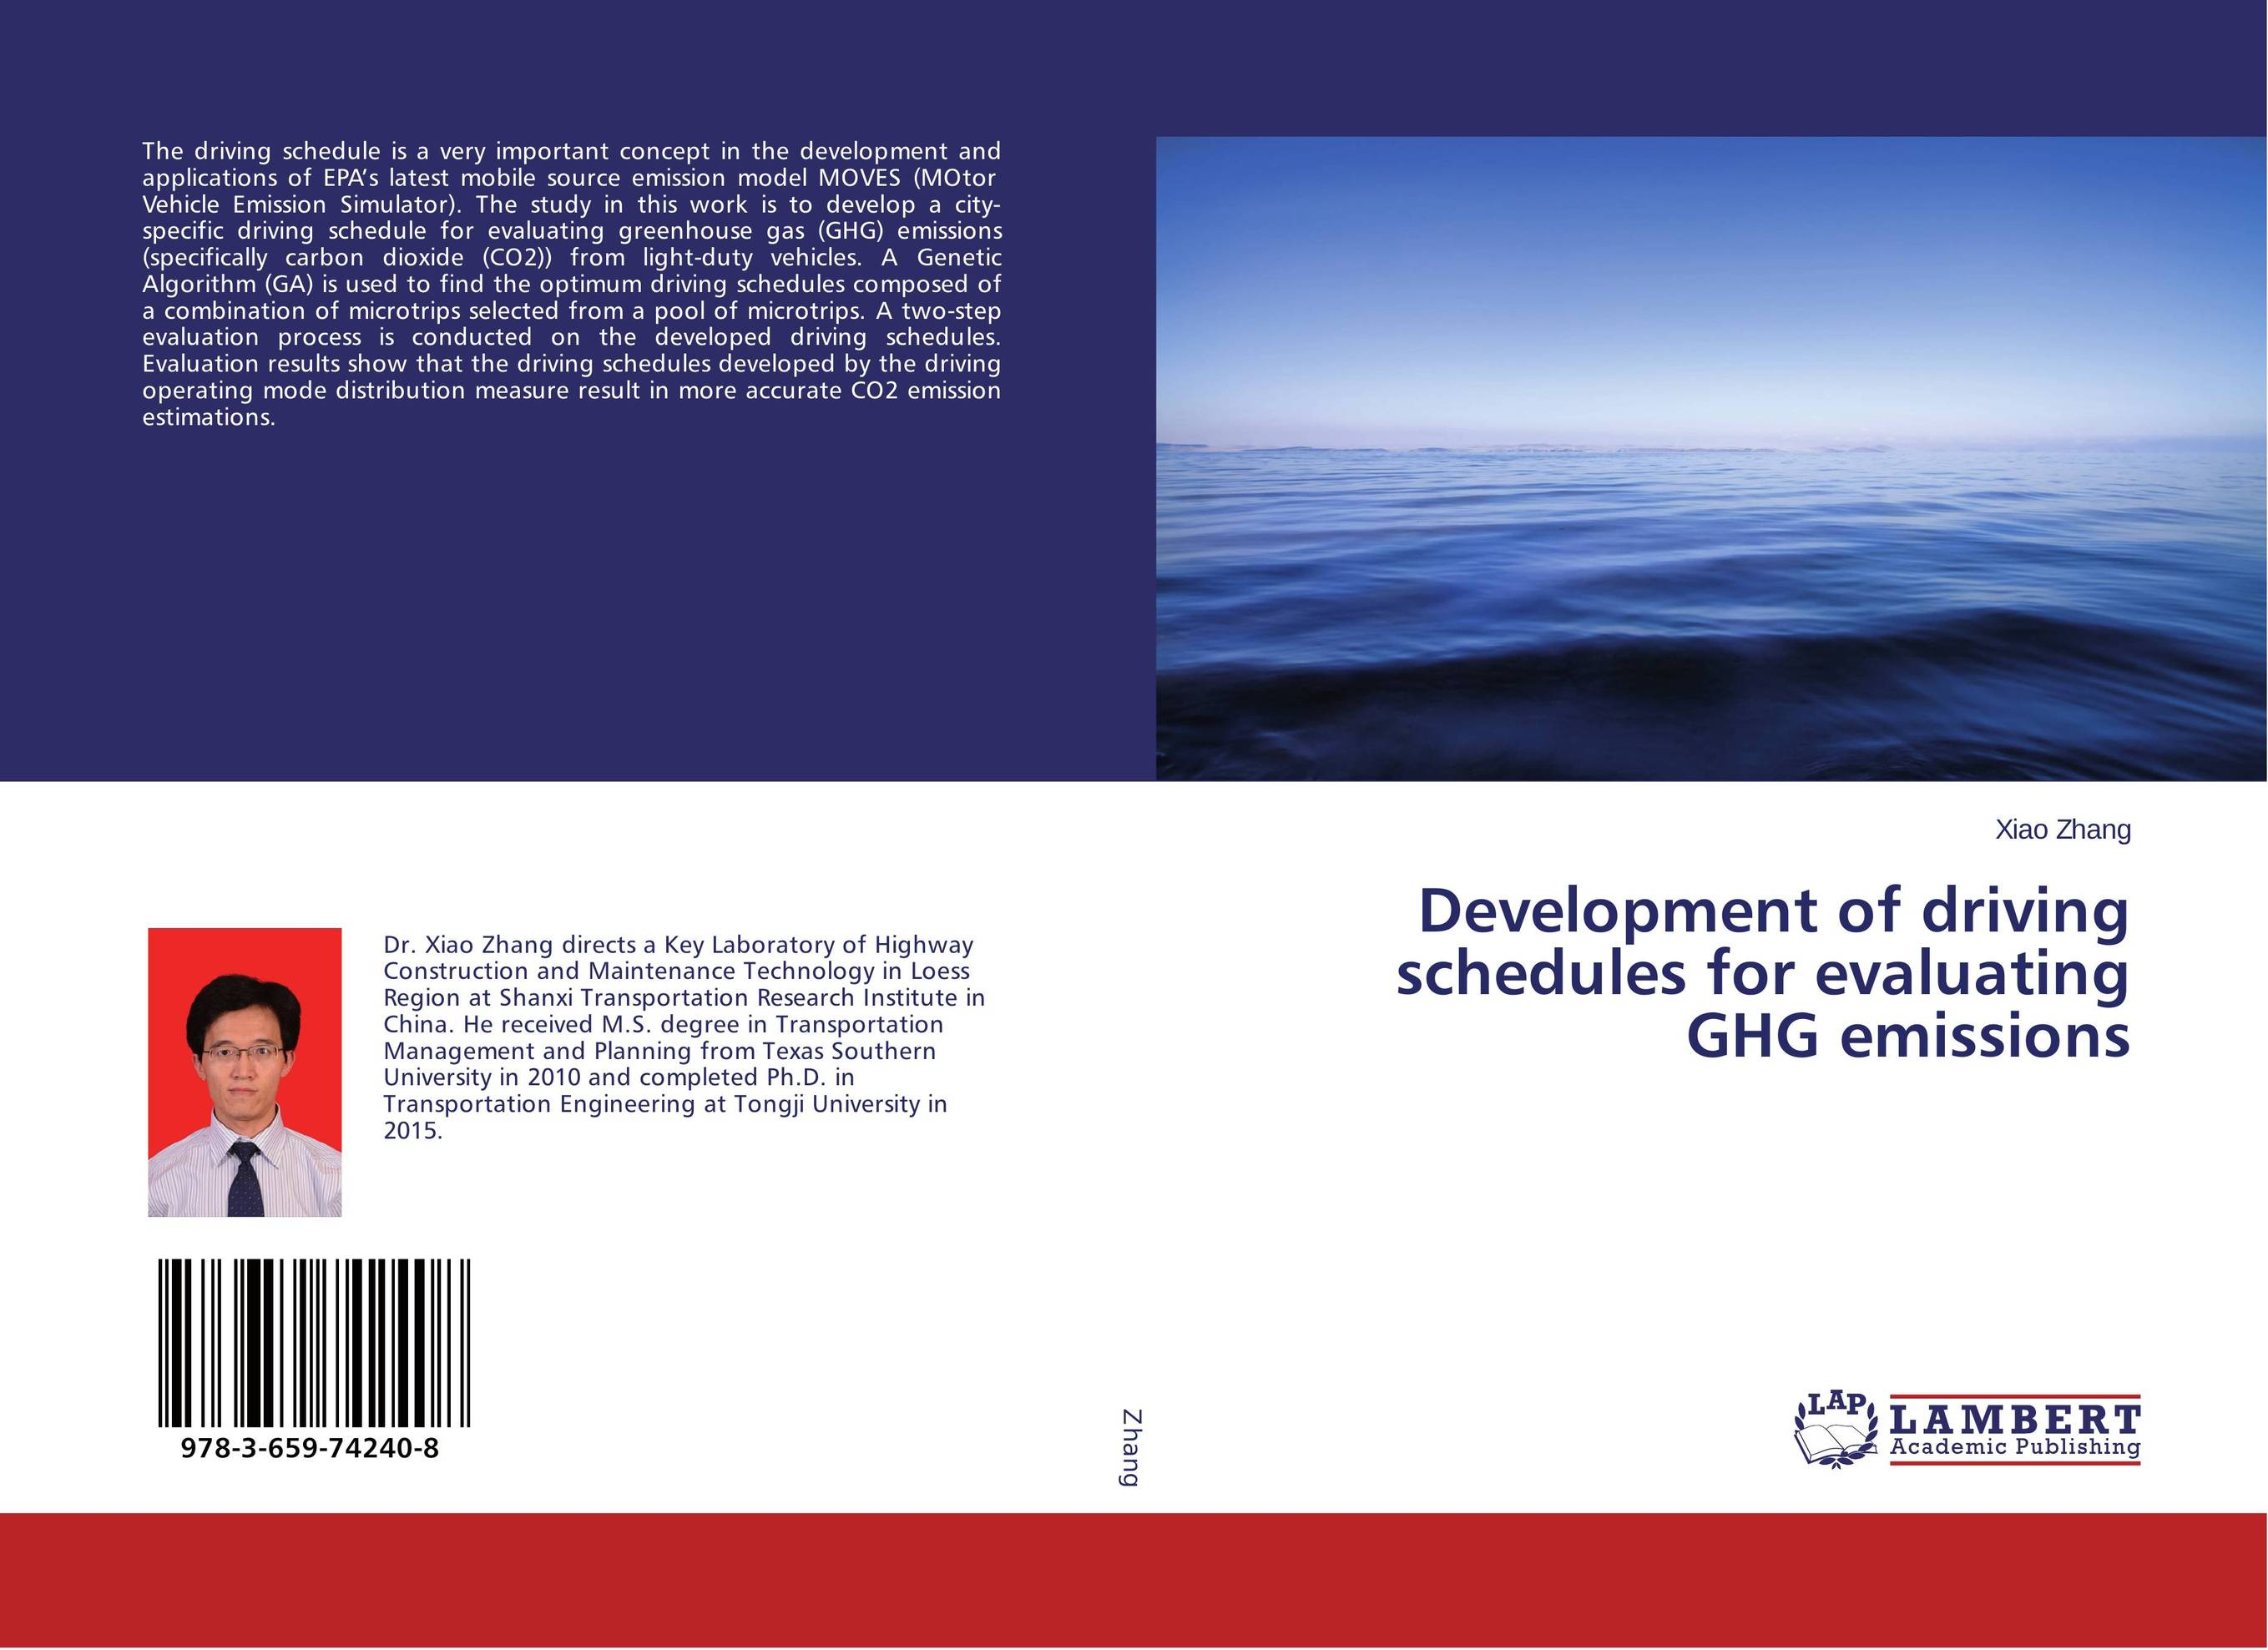 Development of driving schedules for evaluating GHG emissions